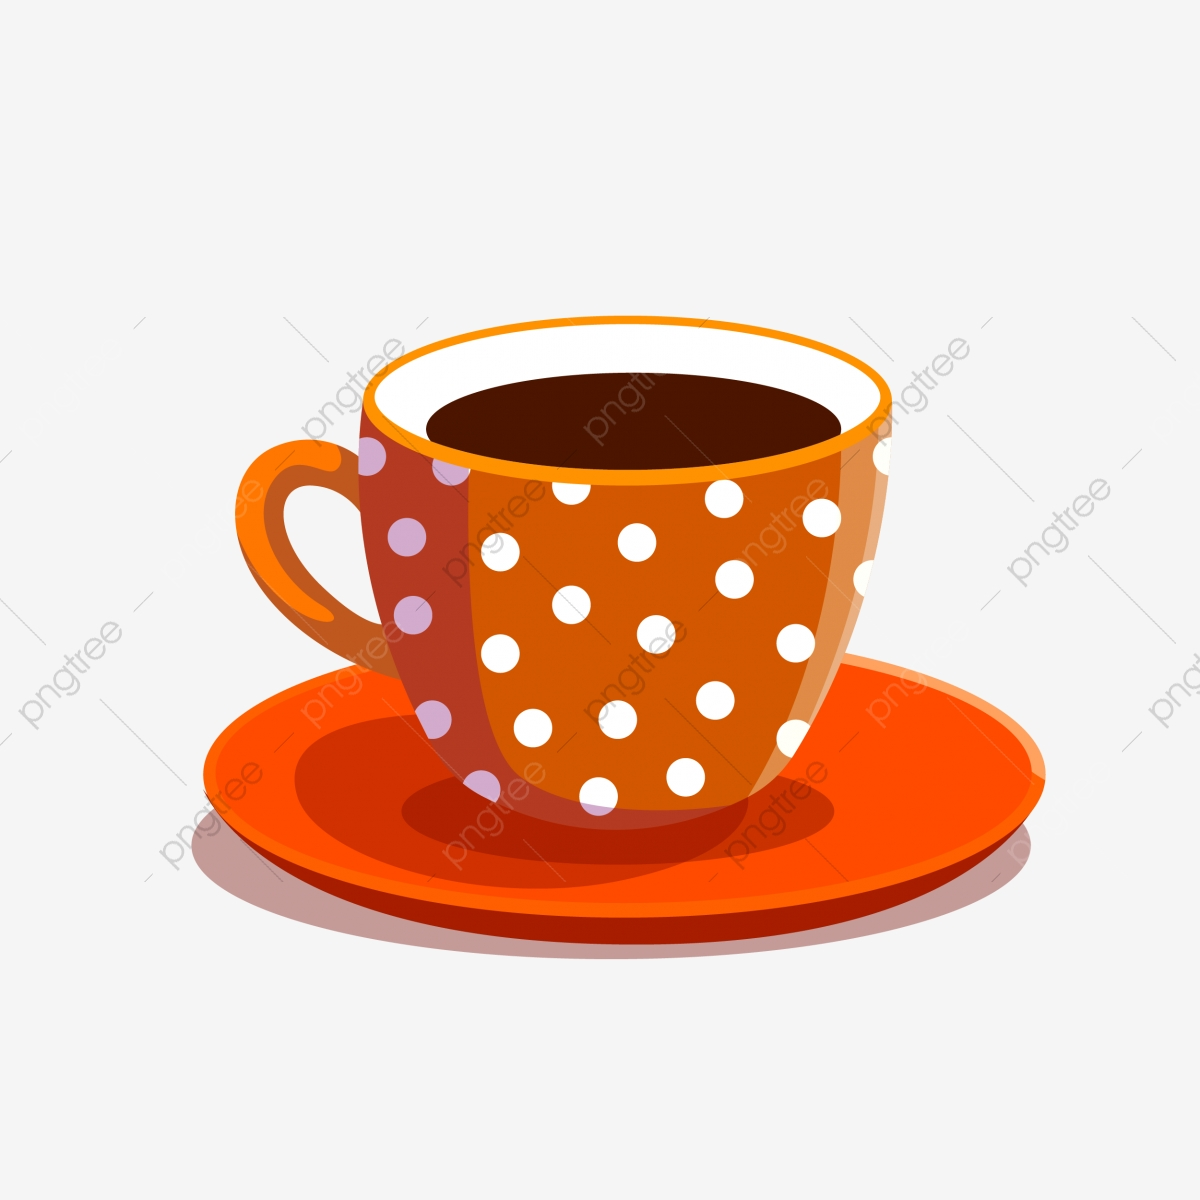 Simple Style Coffee Cup Element For Commercial Use Coffee Mug Clipart Coffee Cup Png And Vector With Transparent Background For Free Download